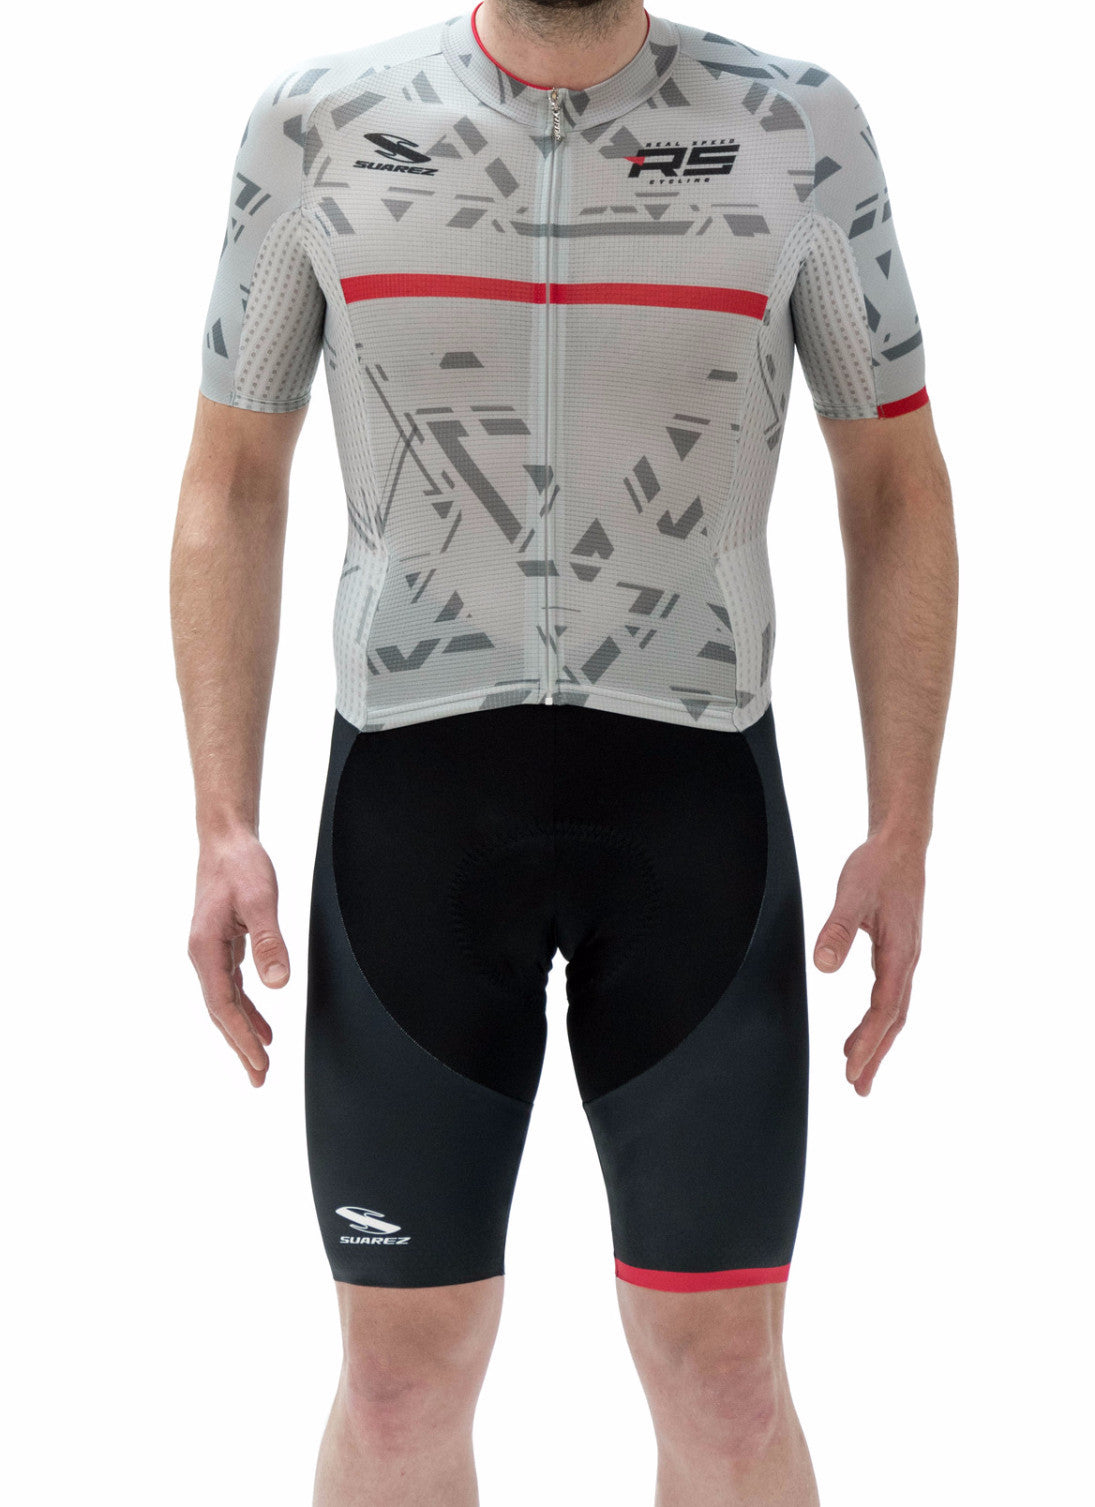 Real Speed One Piece Speed Suit - Racer Sportif